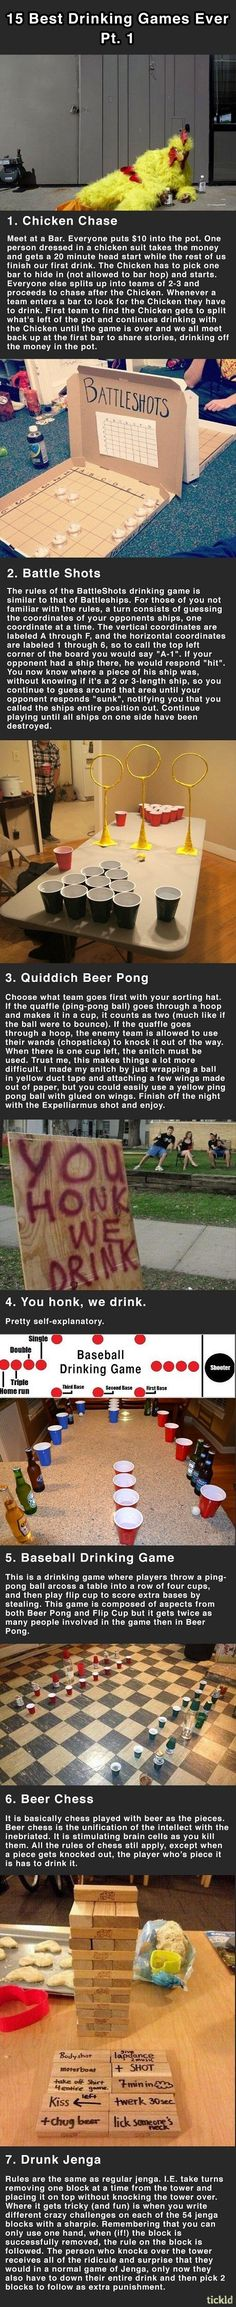 15 Awesome Drinking Games - Seriously, For Real?Seriously, For Real?